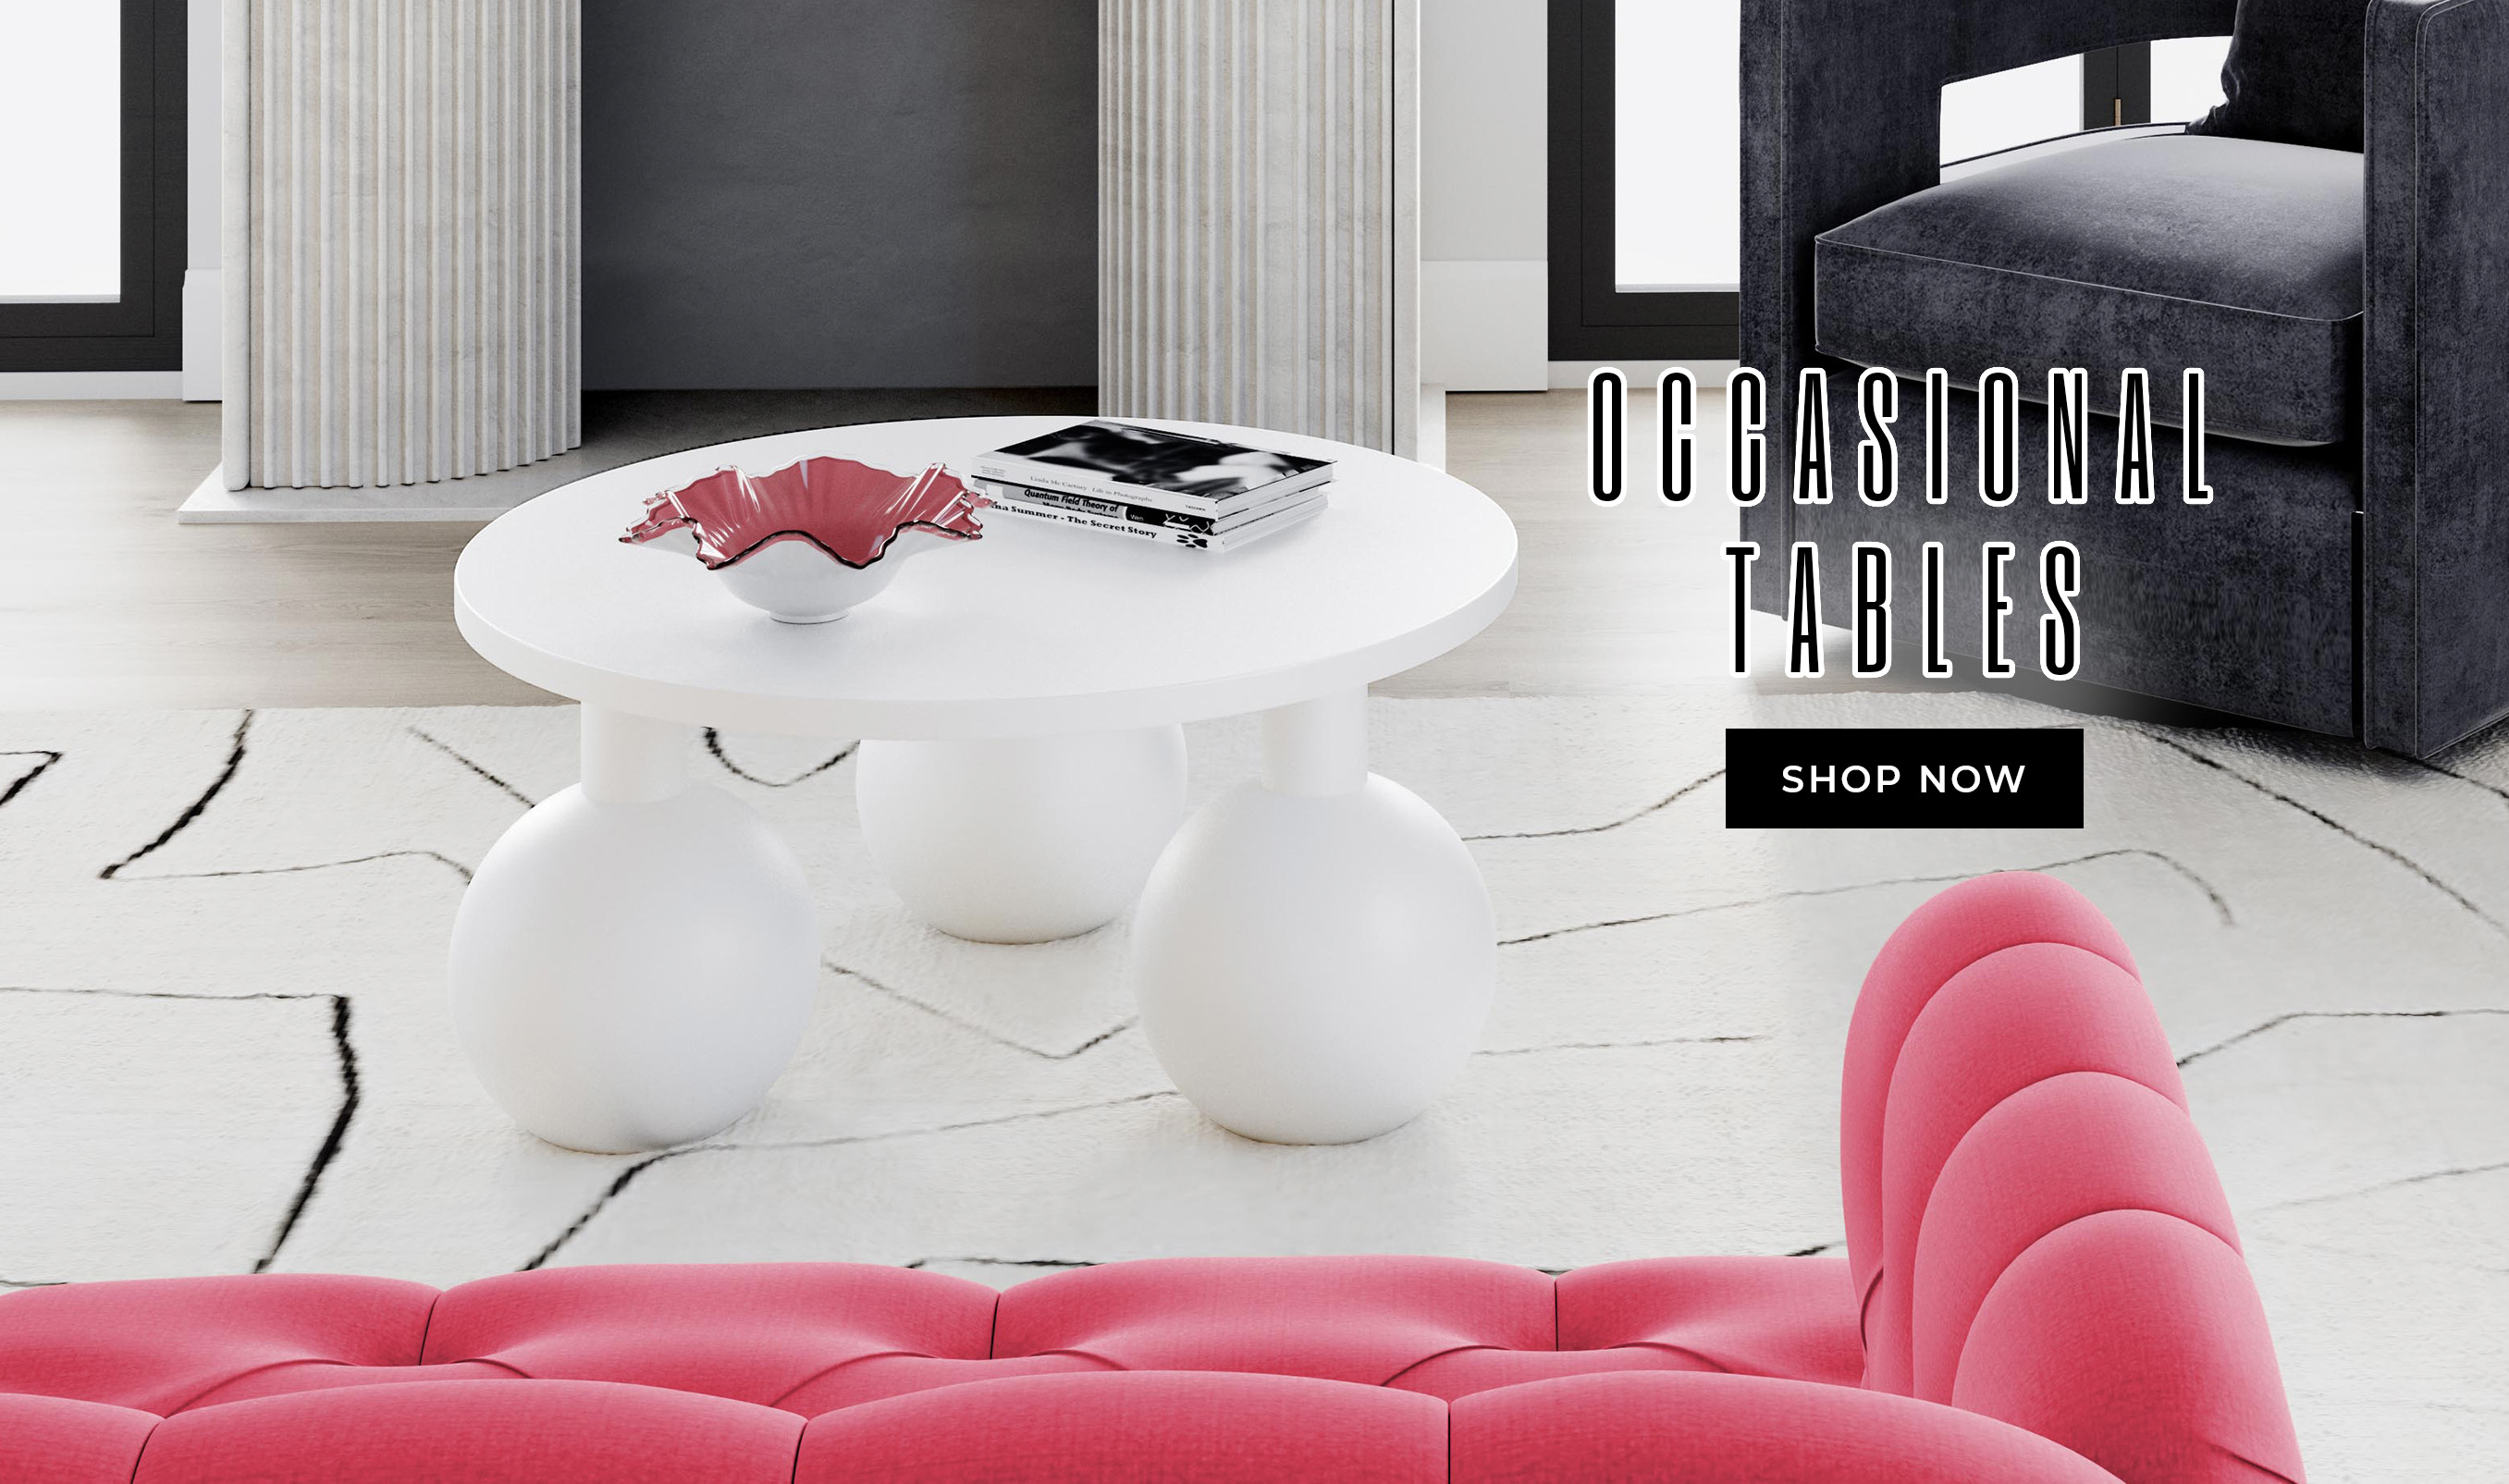 occasional tables shop now